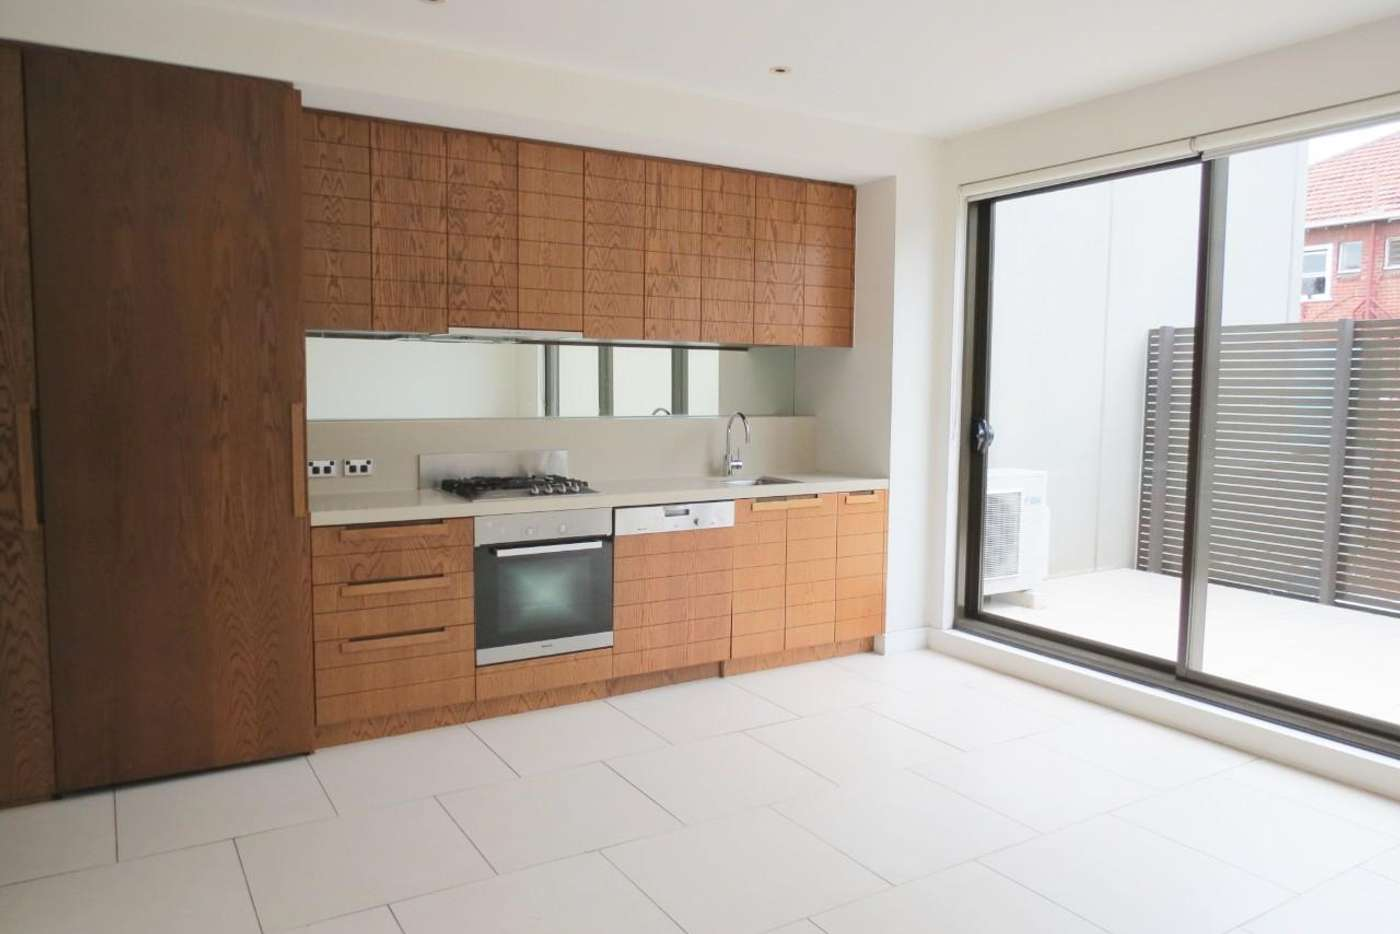 Main view of Homely apartment listing, 208/27-31 Herbert Street, St Kilda VIC 3182